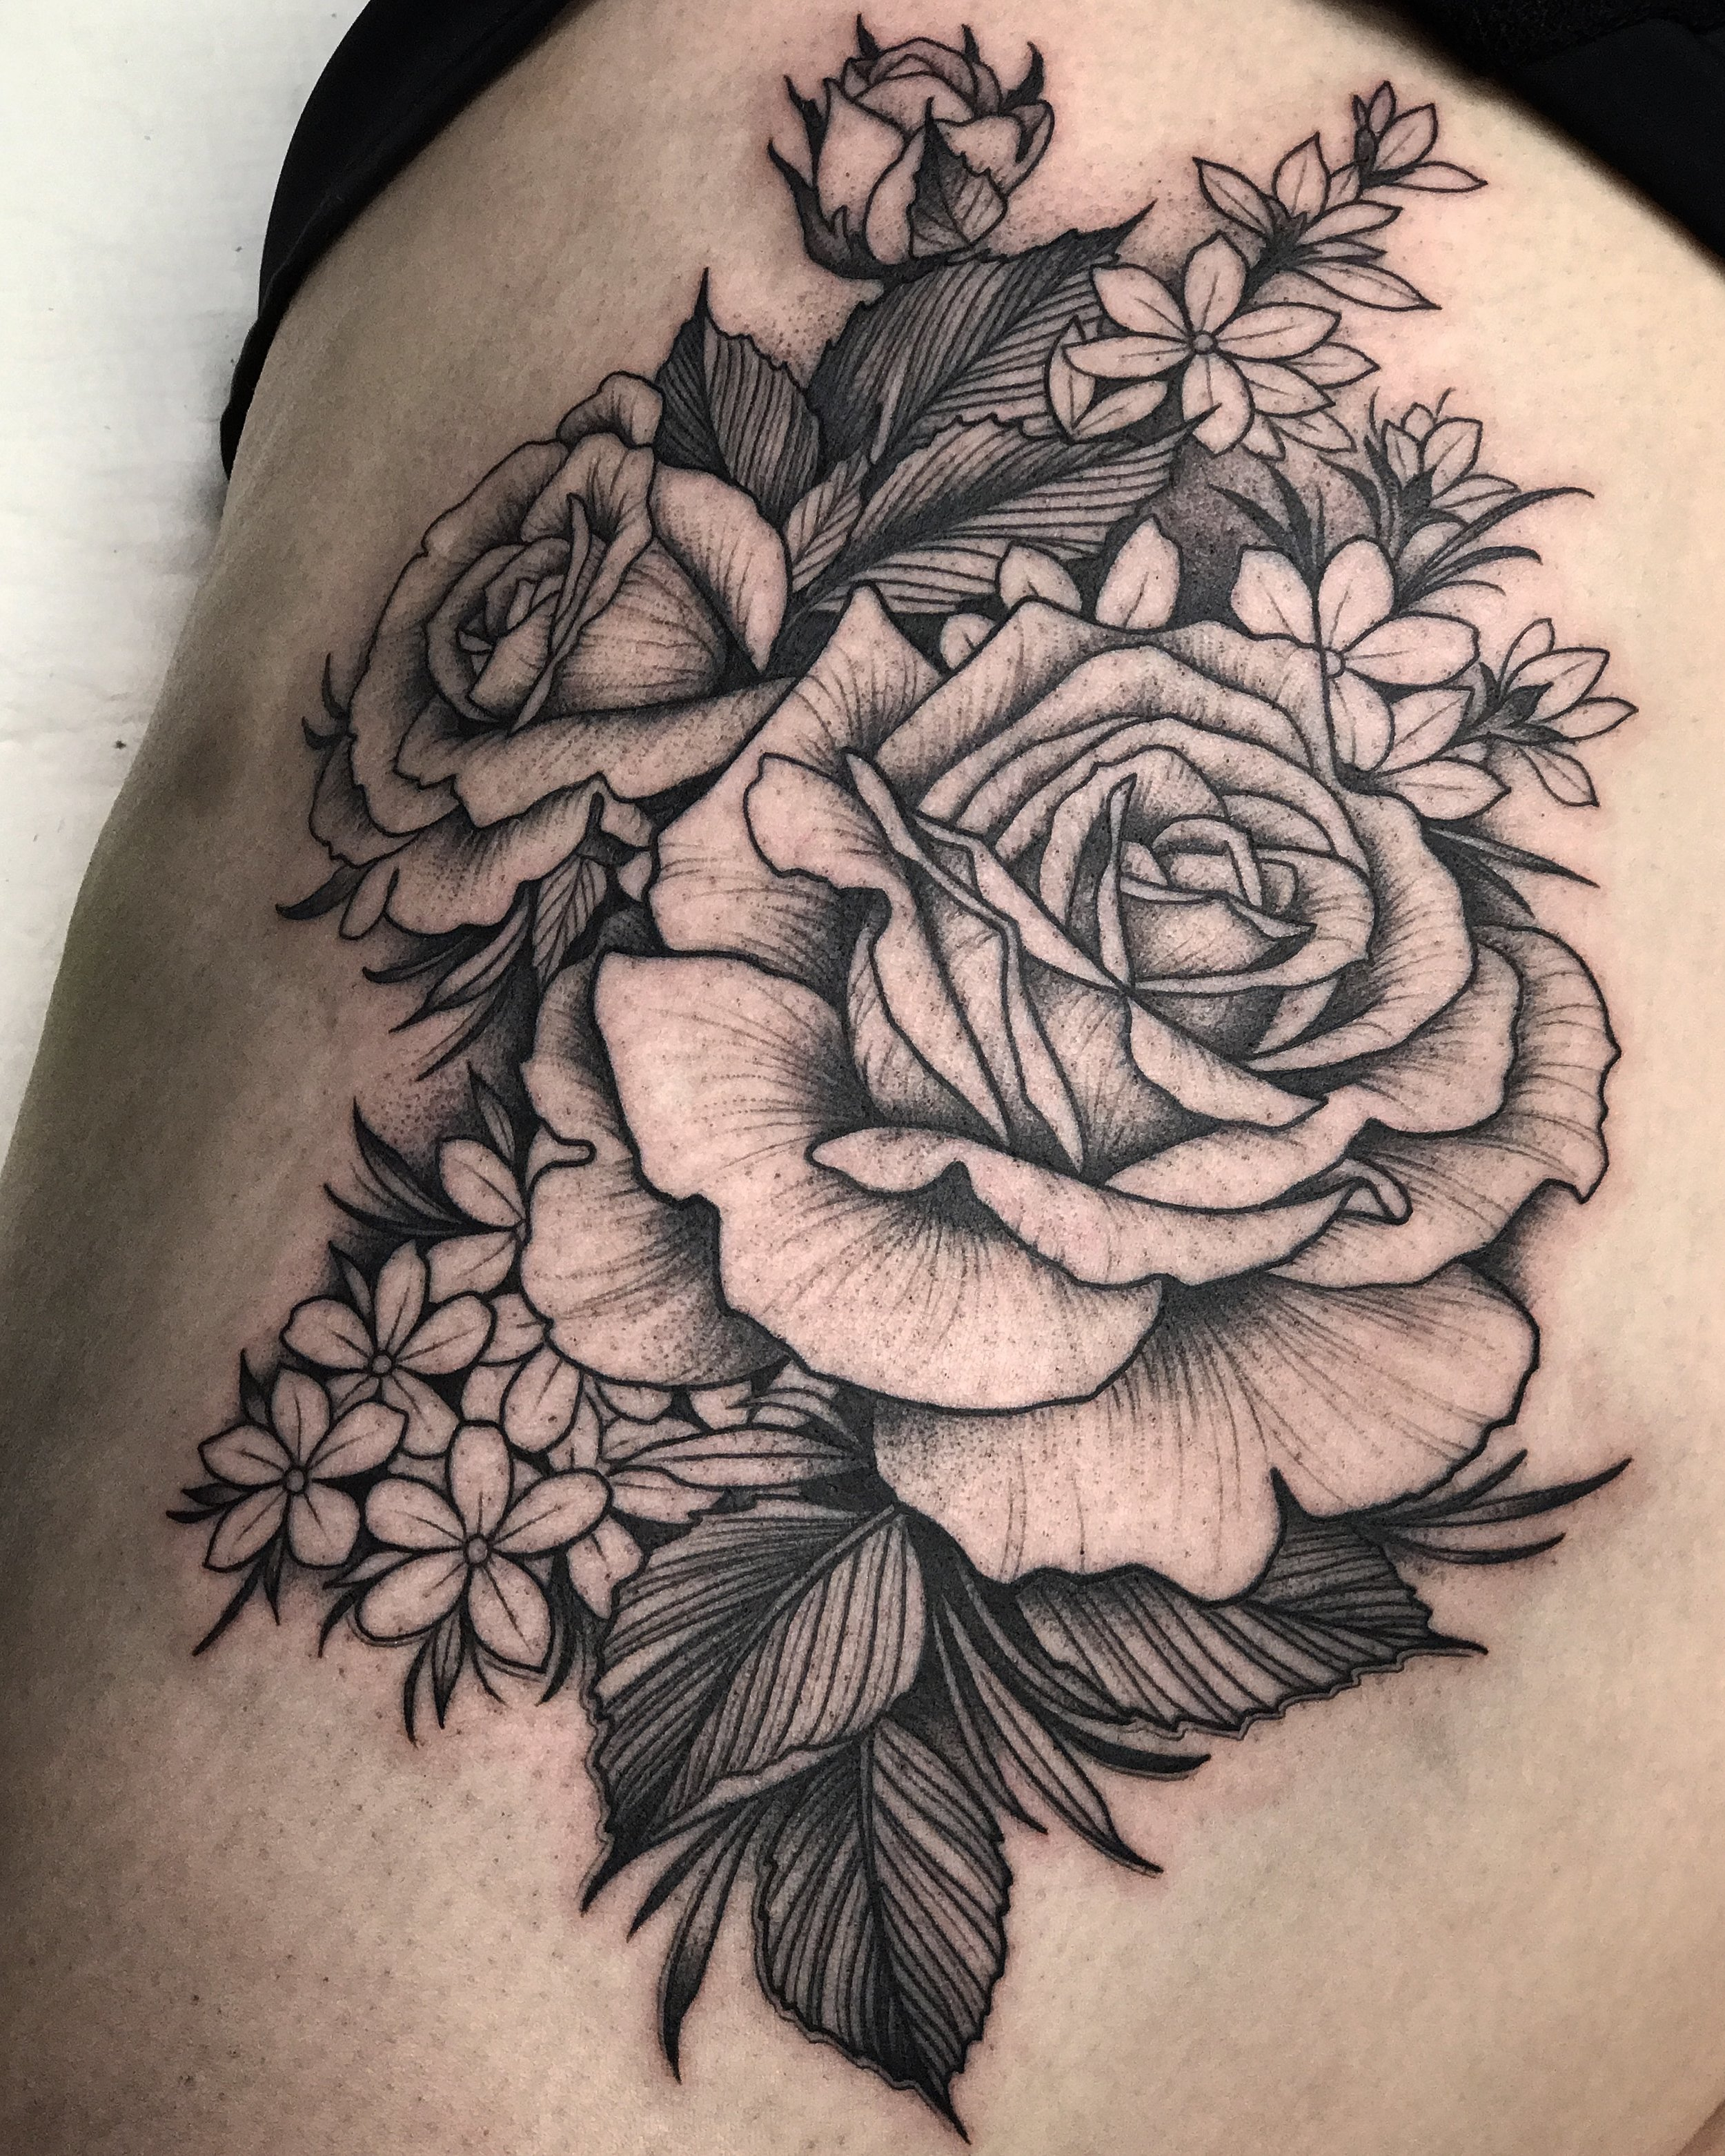 Blackwork Floral Tattoo by David Mushaney